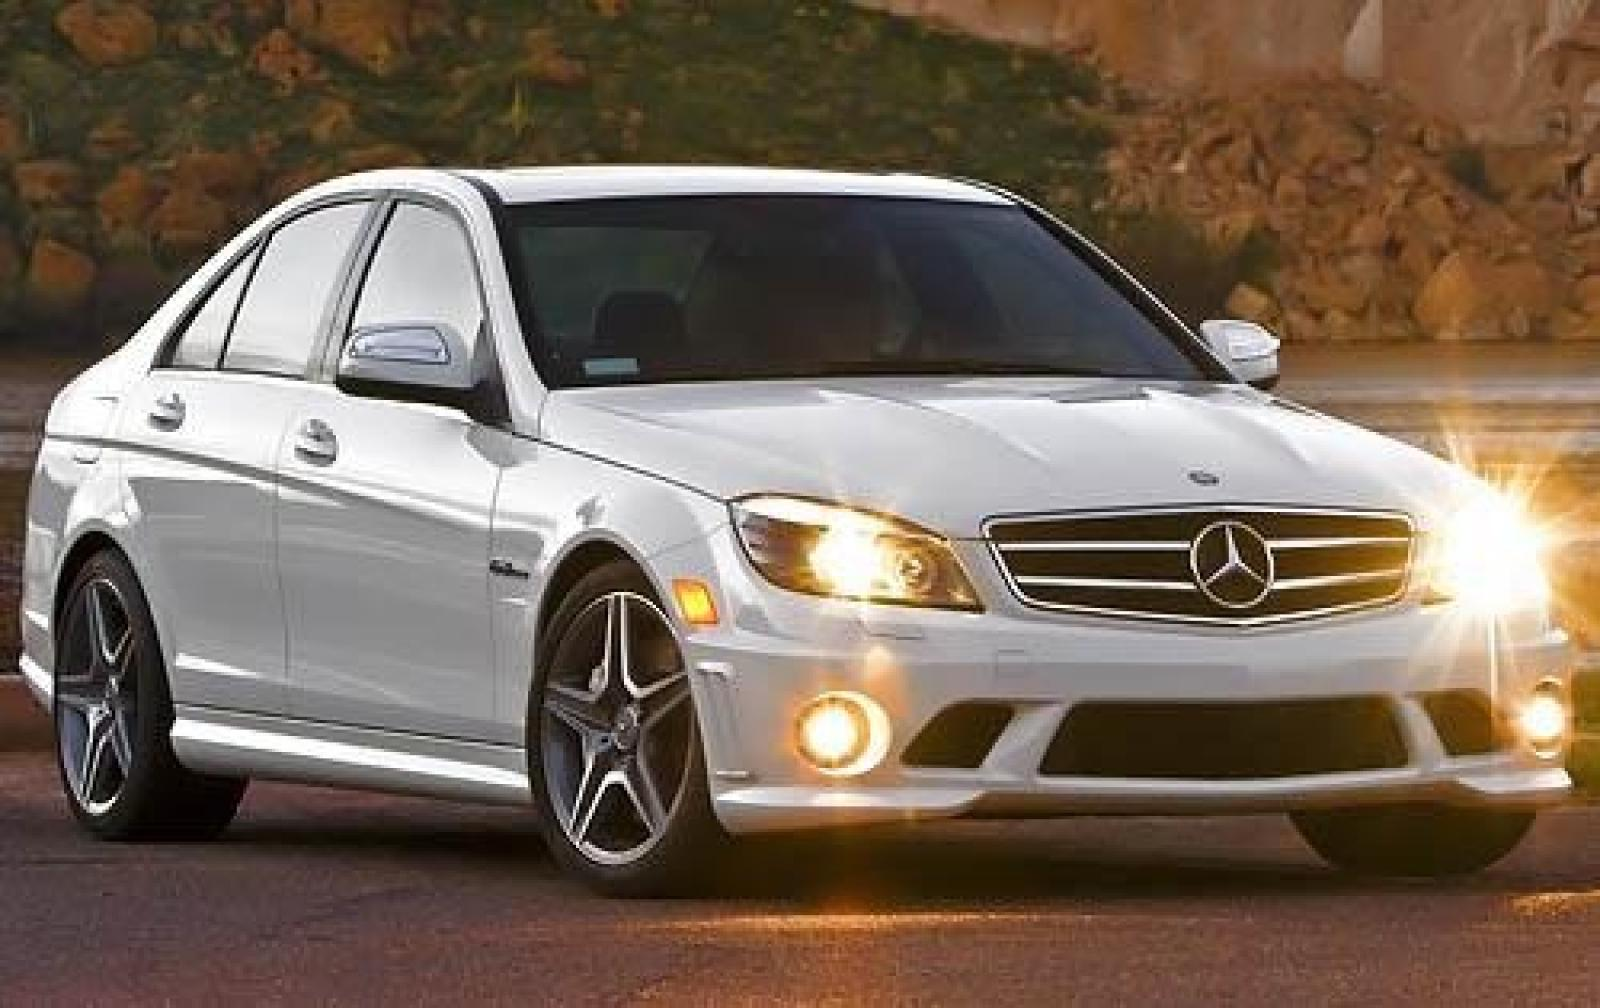 2008 Mercedes-Benz C-Class - Information and photos - Zomb Drive